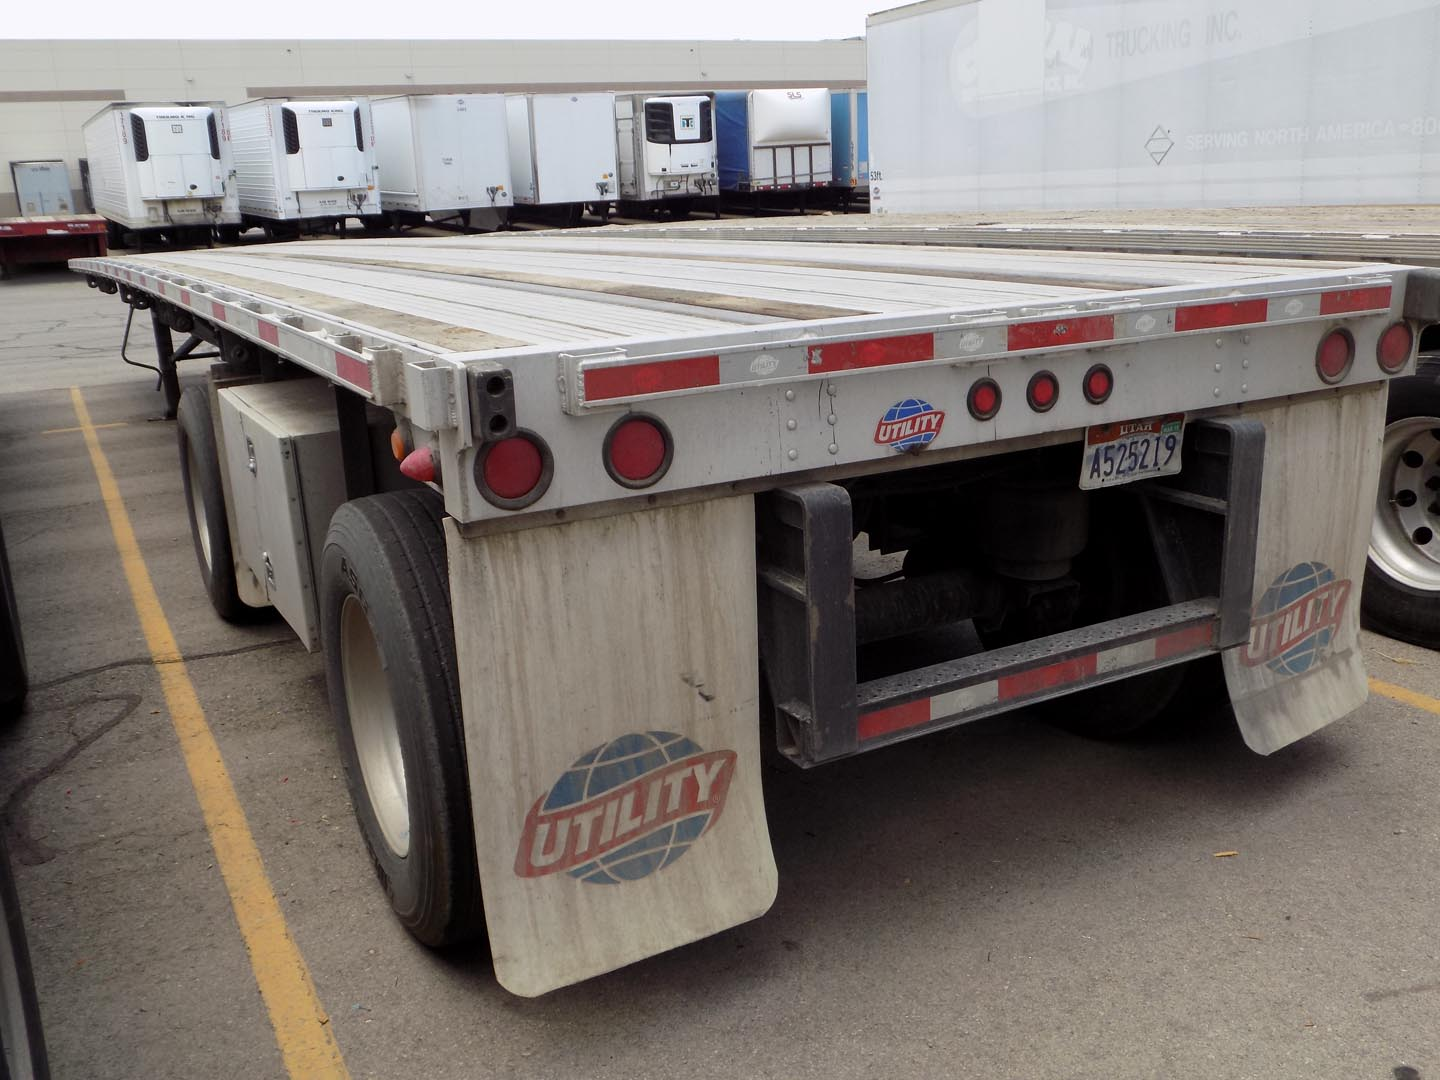 2014 Utility Flatbed